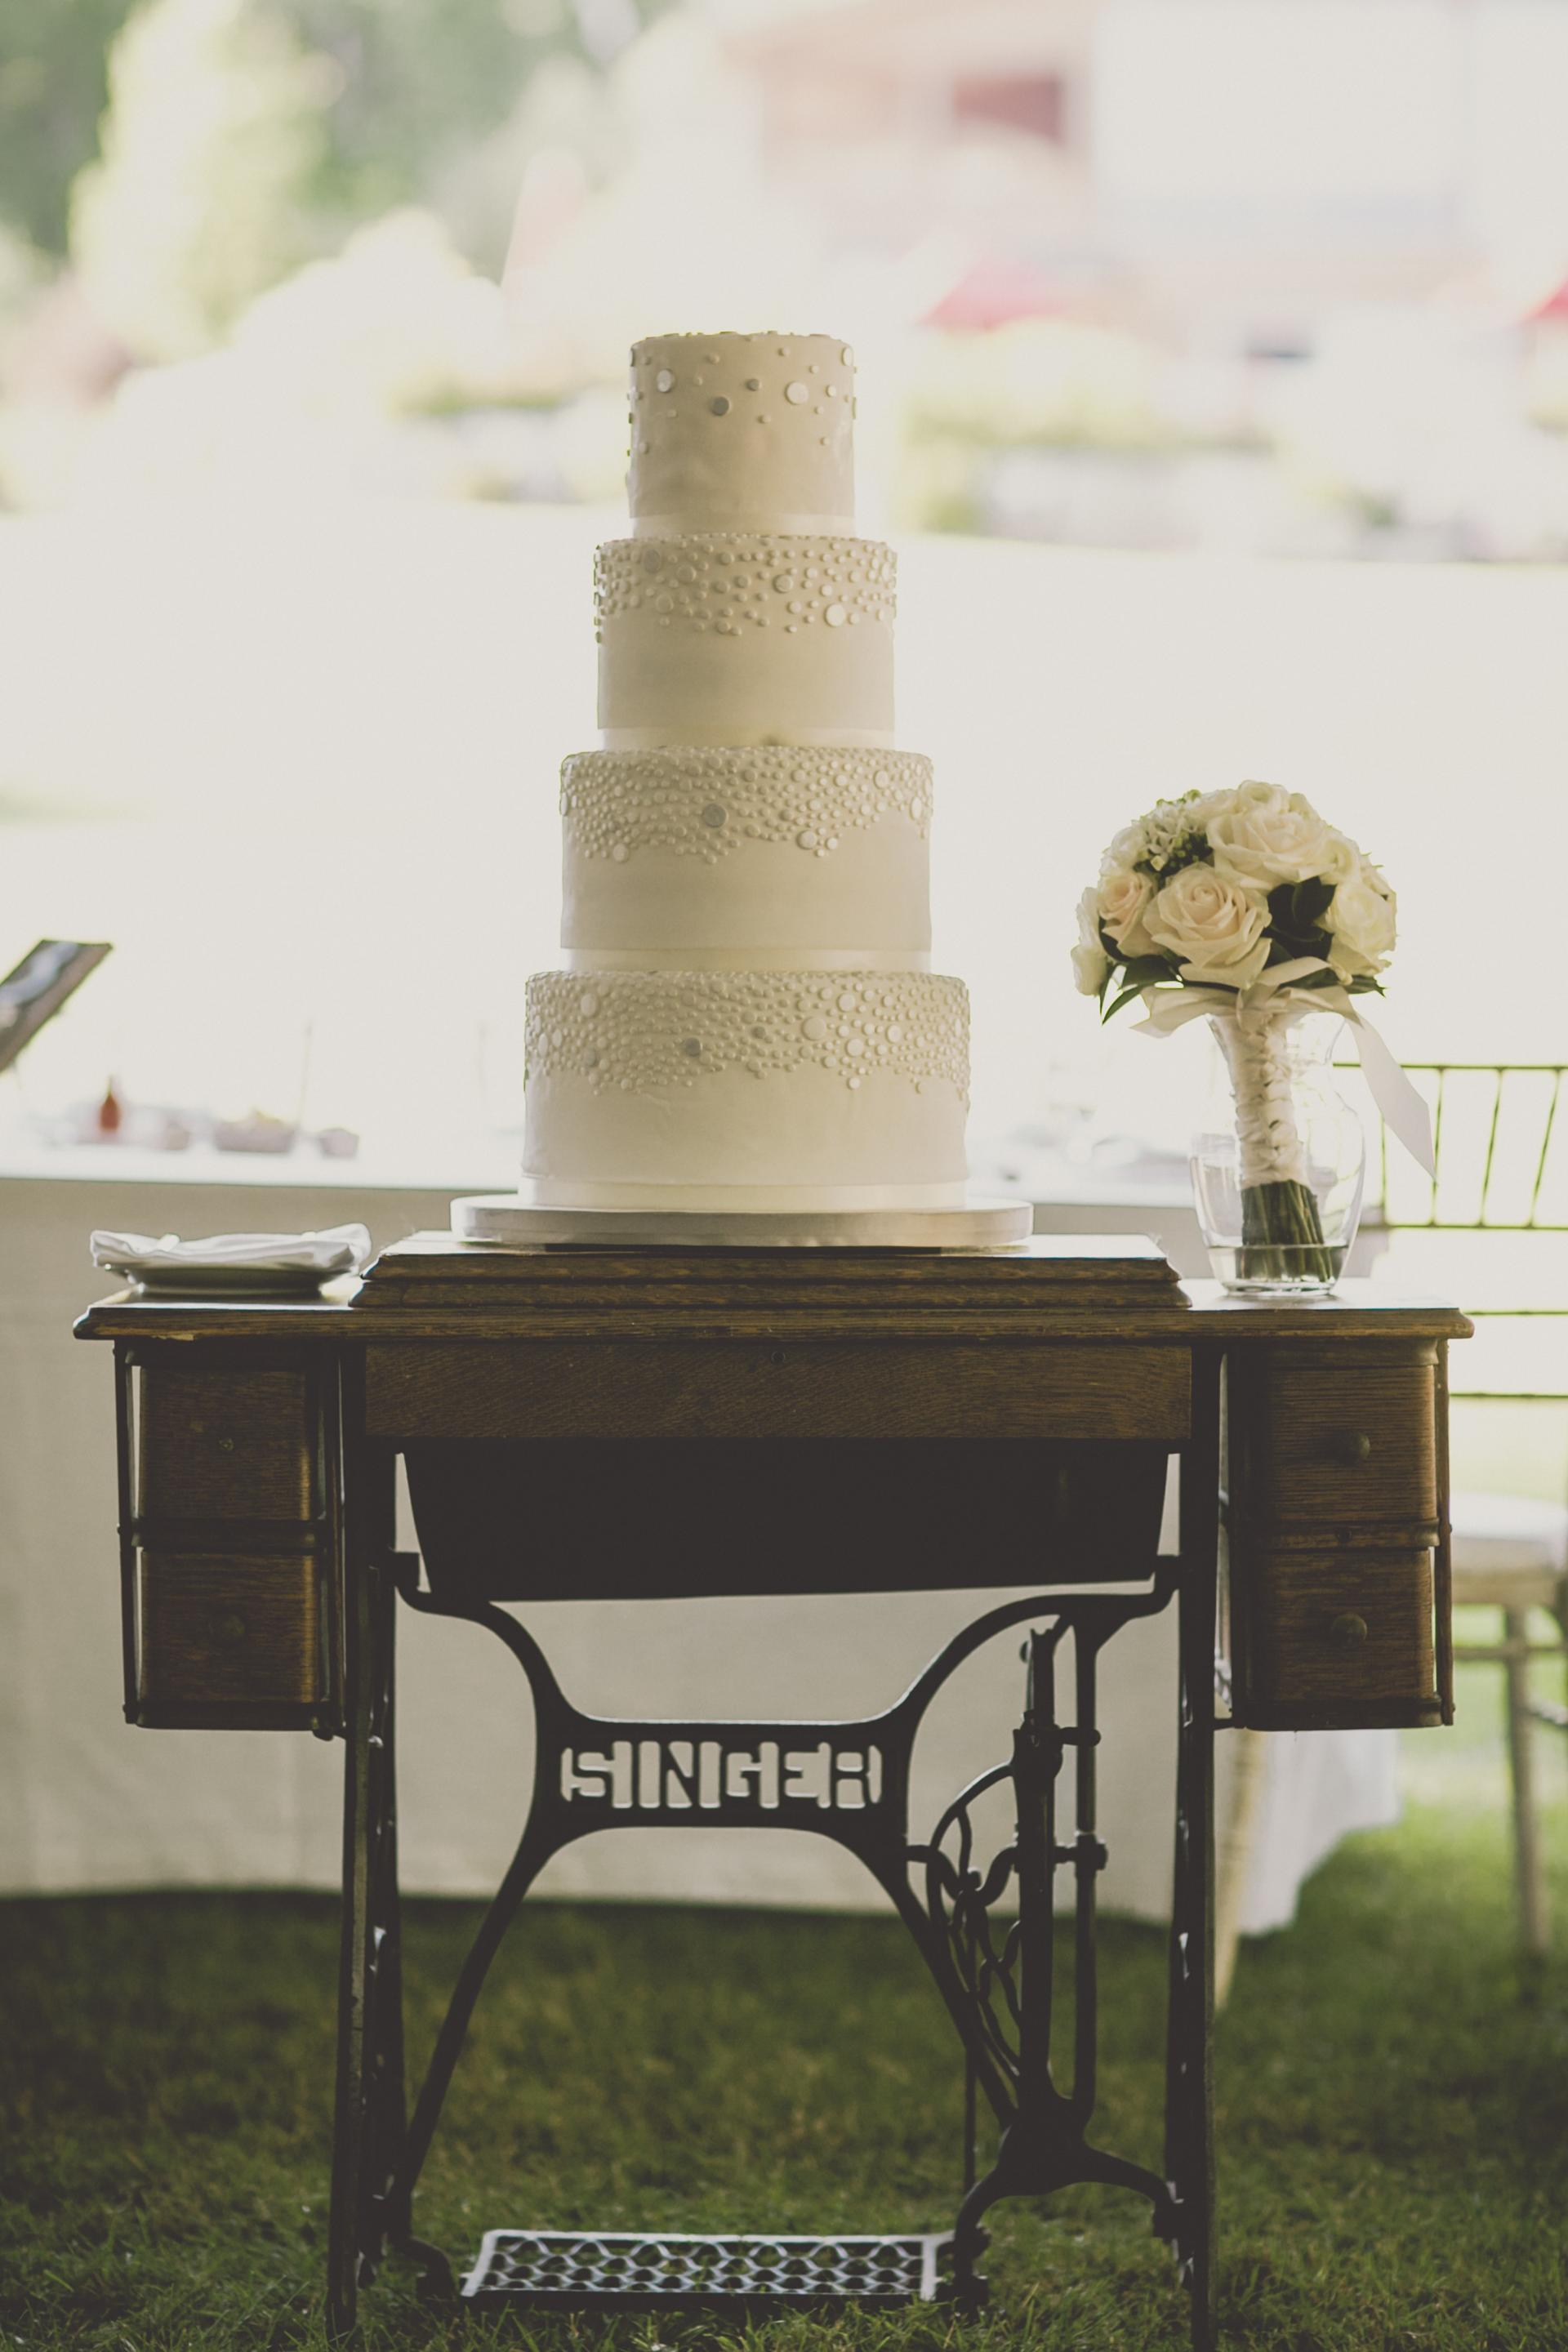 Farm Barn Wedding Cake Singer Sewing Machine